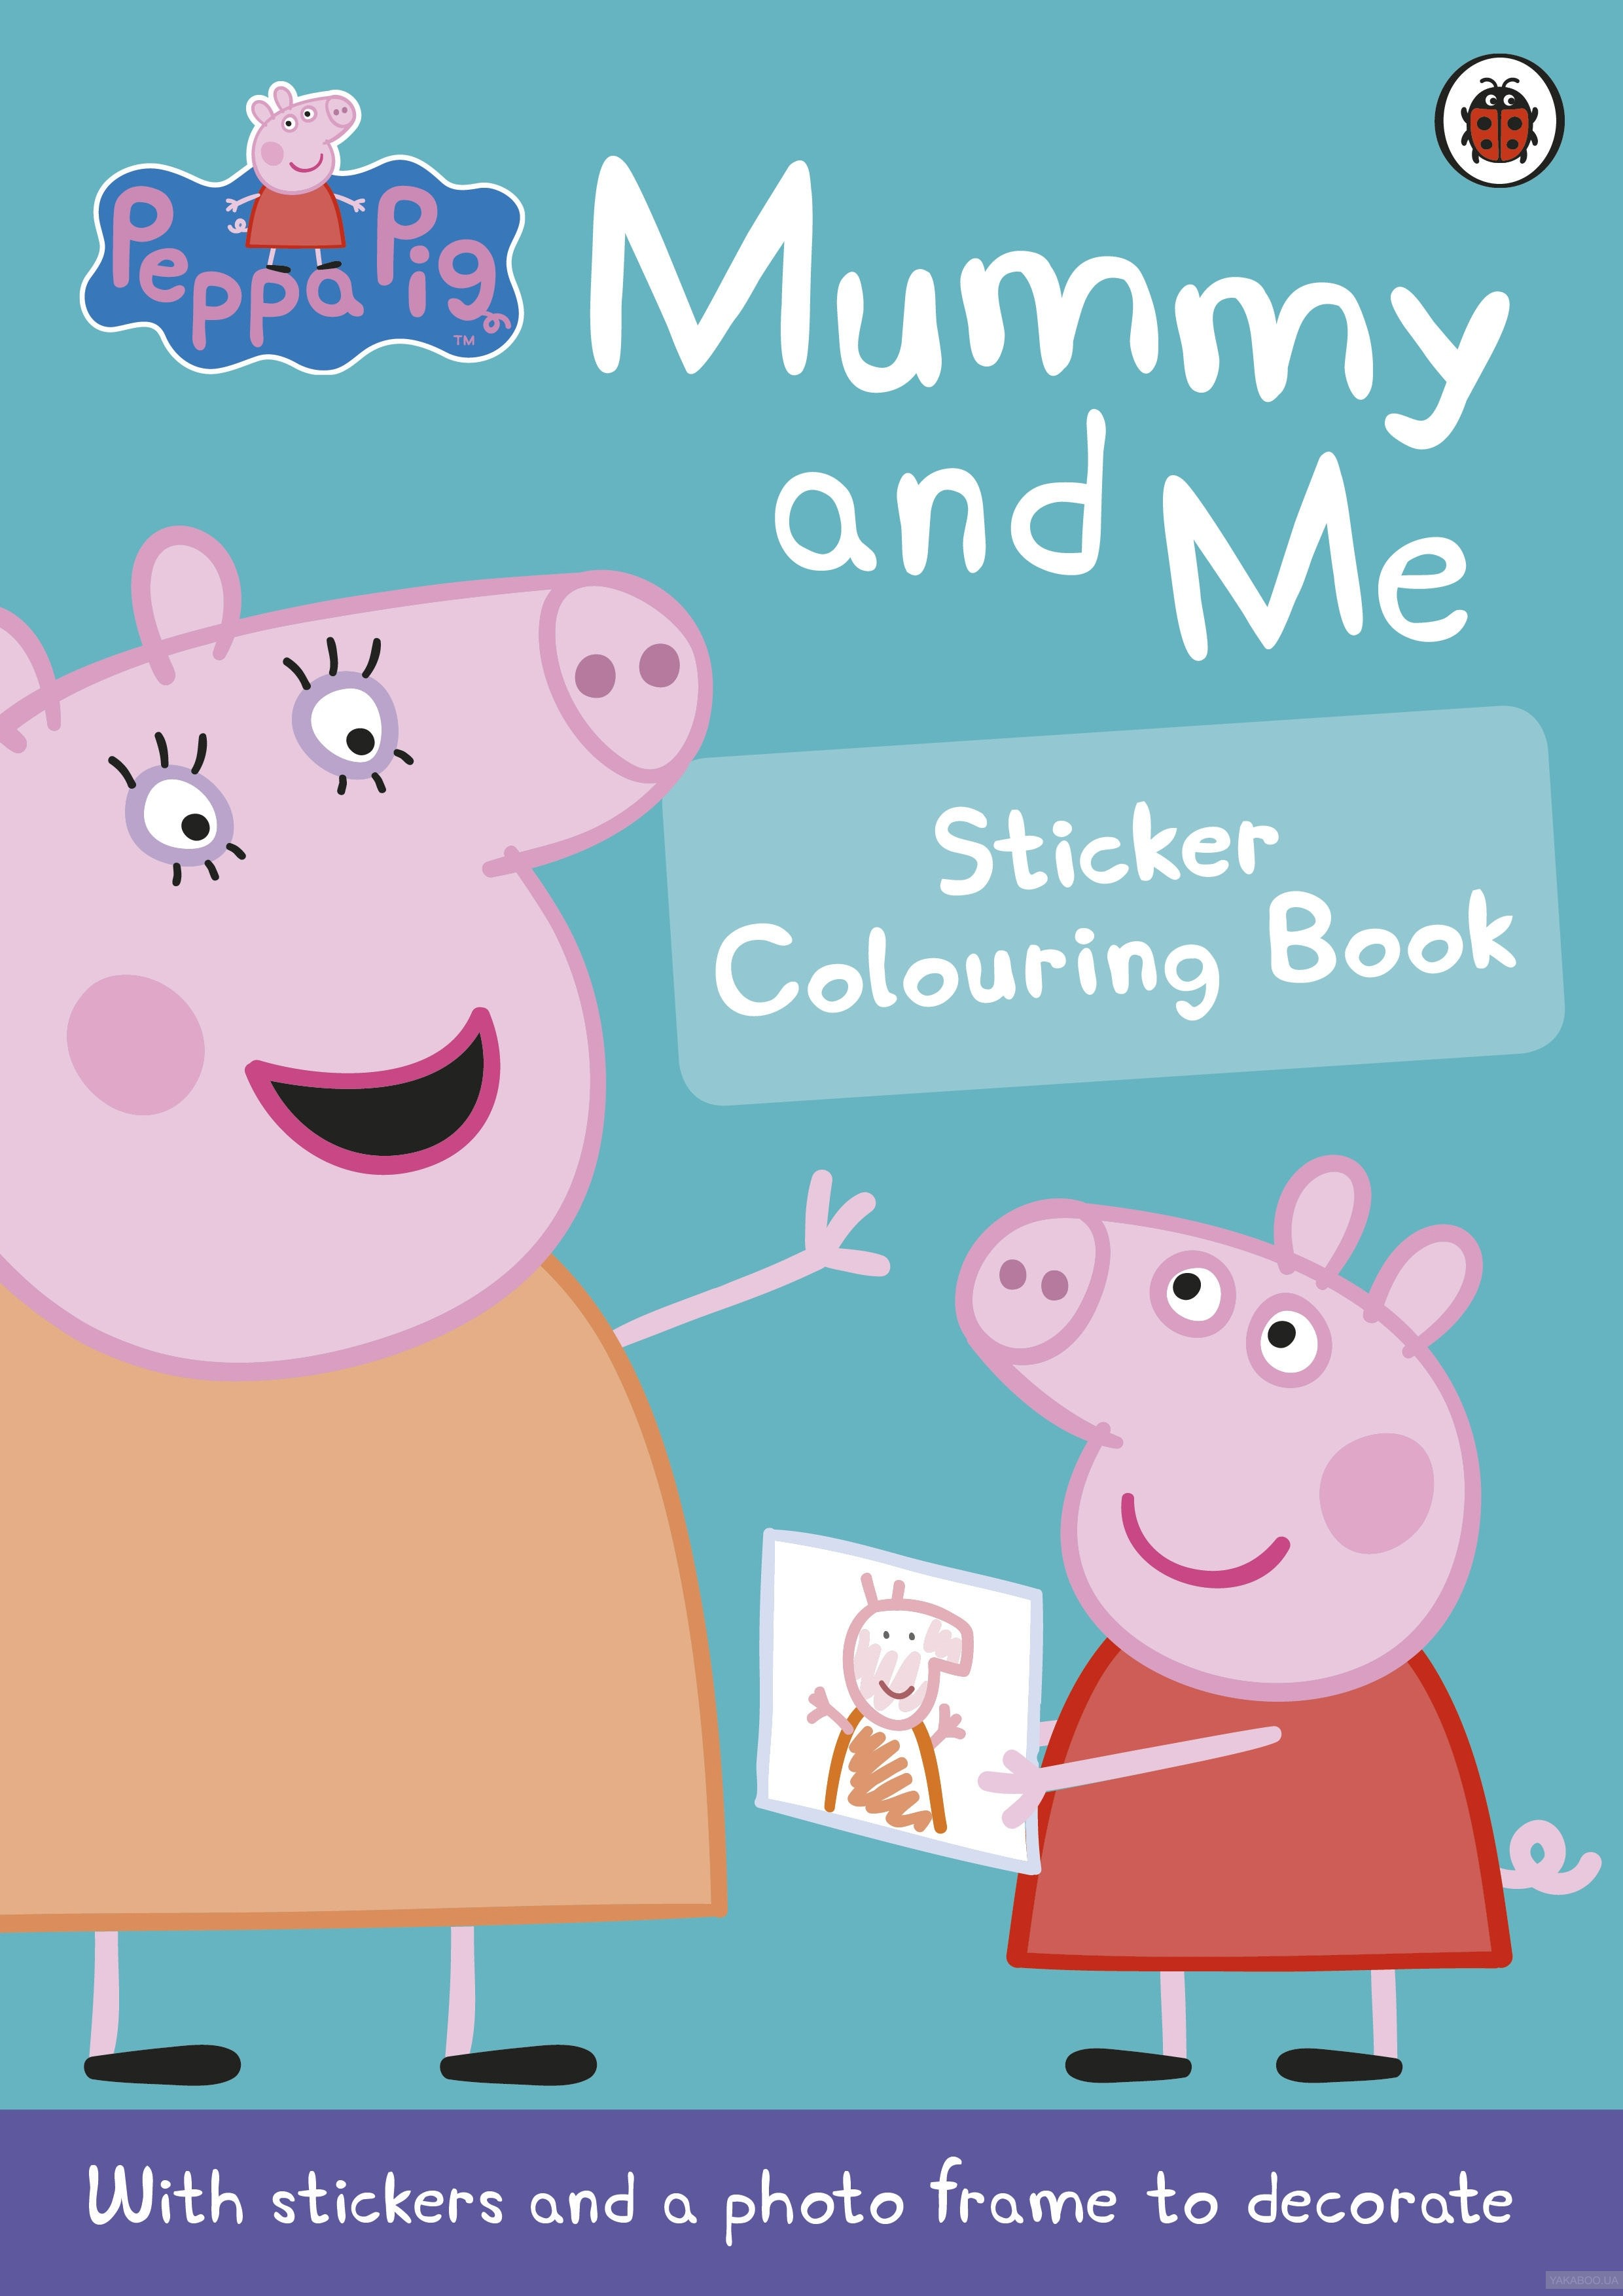 Peppa Pig: Mummy and Me Sticker Colouring Book